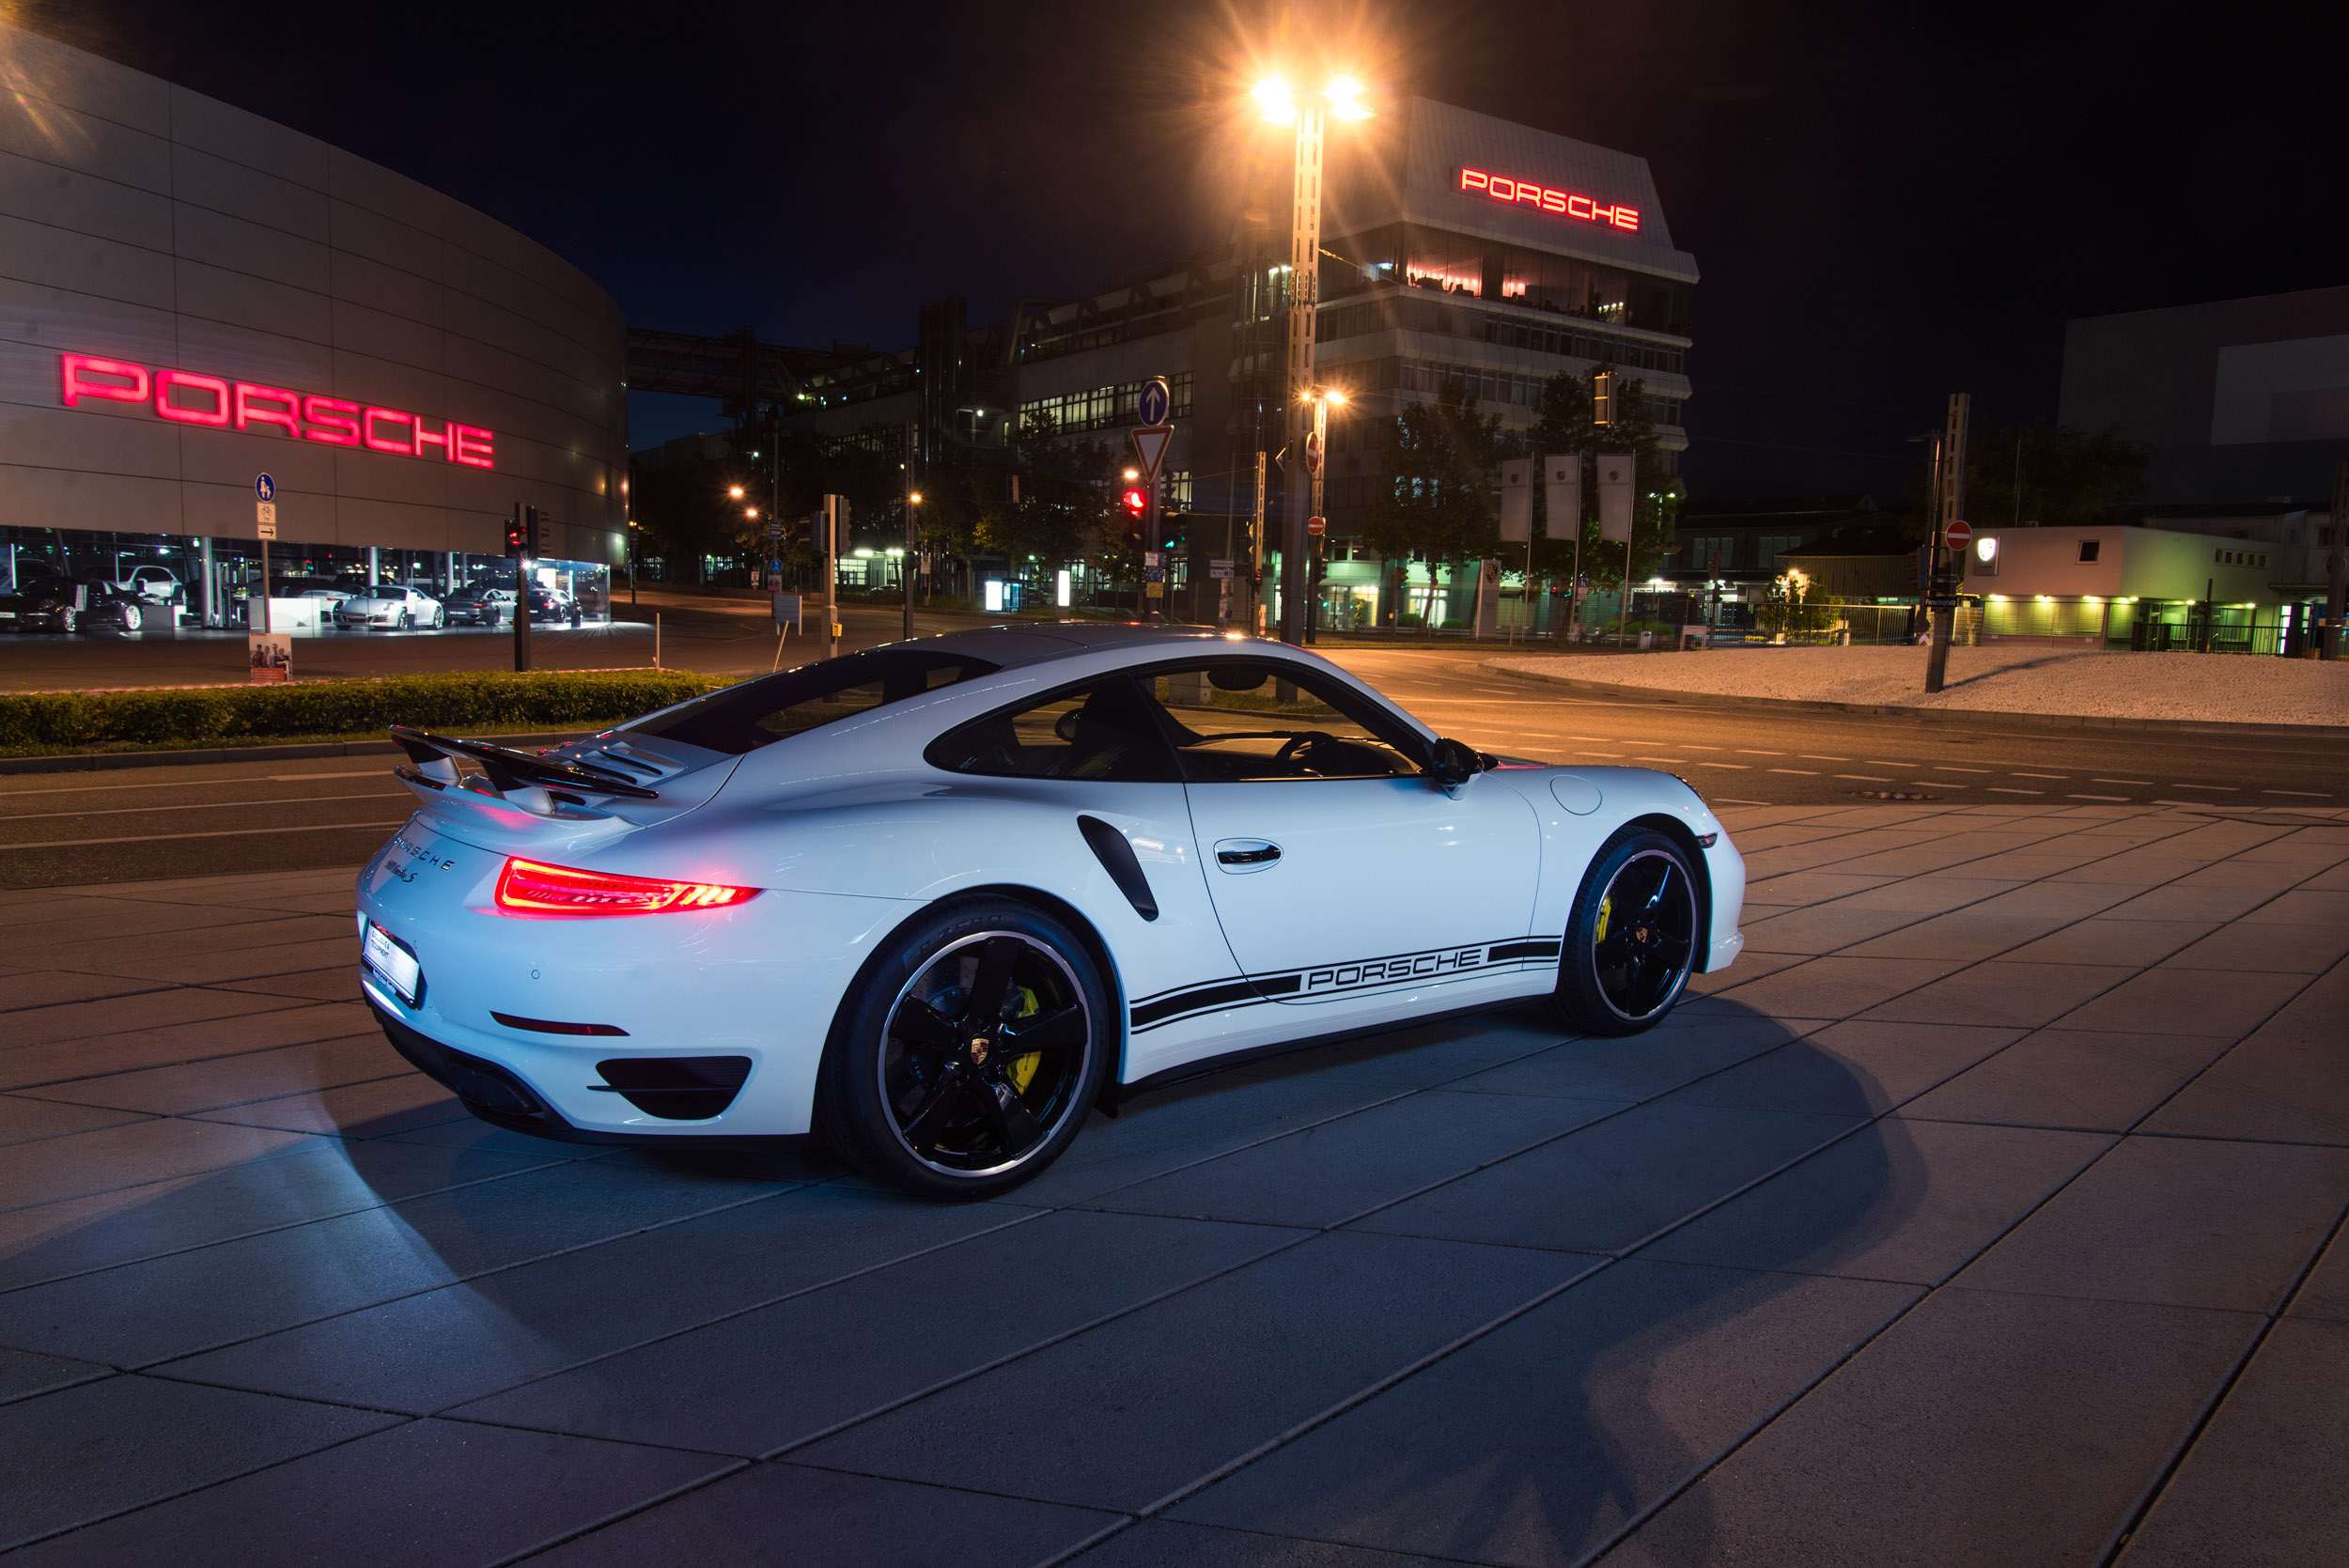 2014 porsche 911 turbo s exclusive gb edition - 911 Porsche 2014 Price